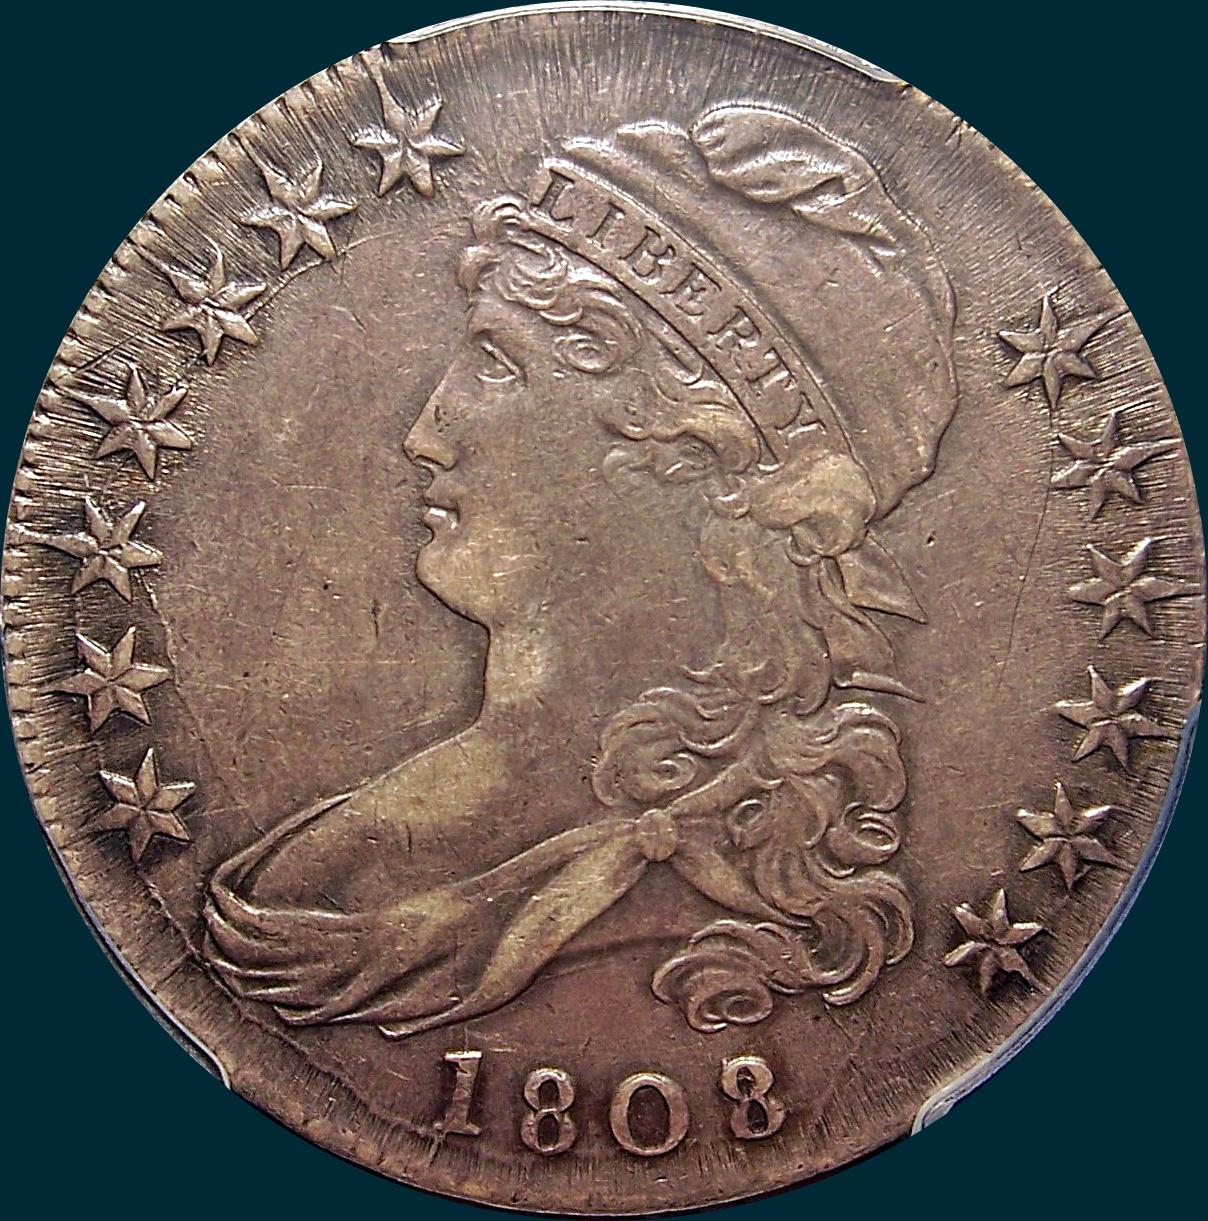 1808, 8 over 7, 8/7, Capped Bust, Half Dollar